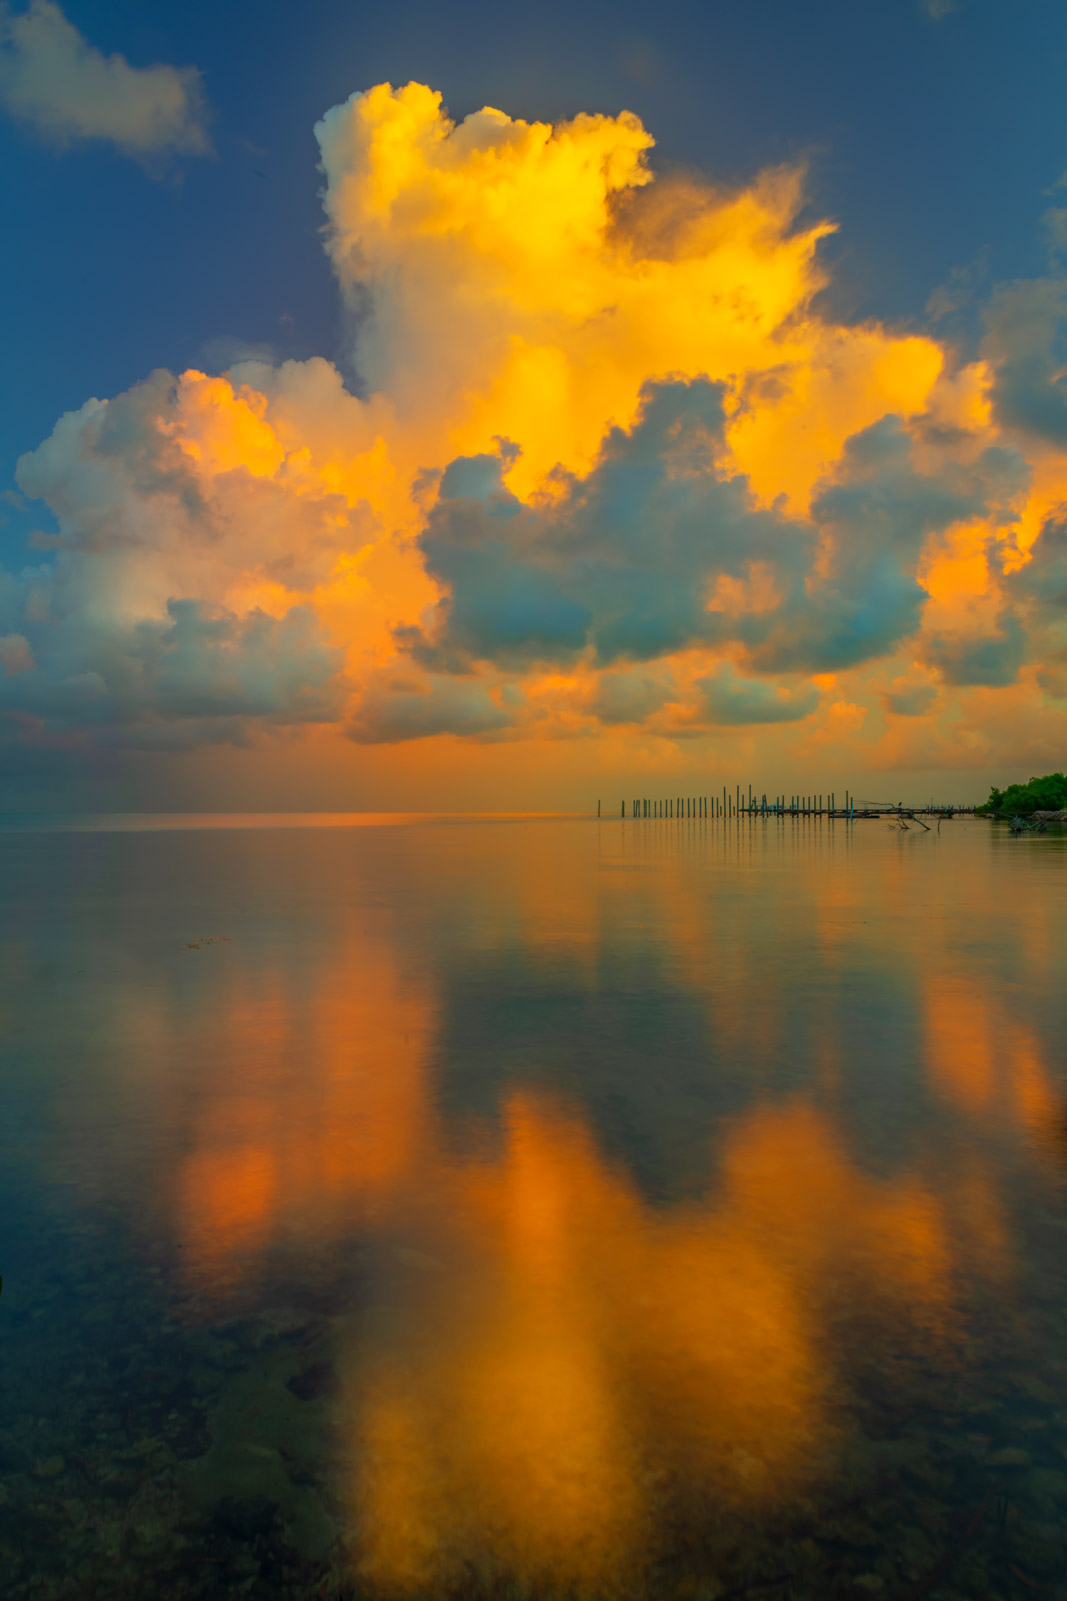 A Limited Edition, Fine Art photograph of sunrise storm clouds reflecting in calm water in Florida Bay in the Florida Keys. Available...